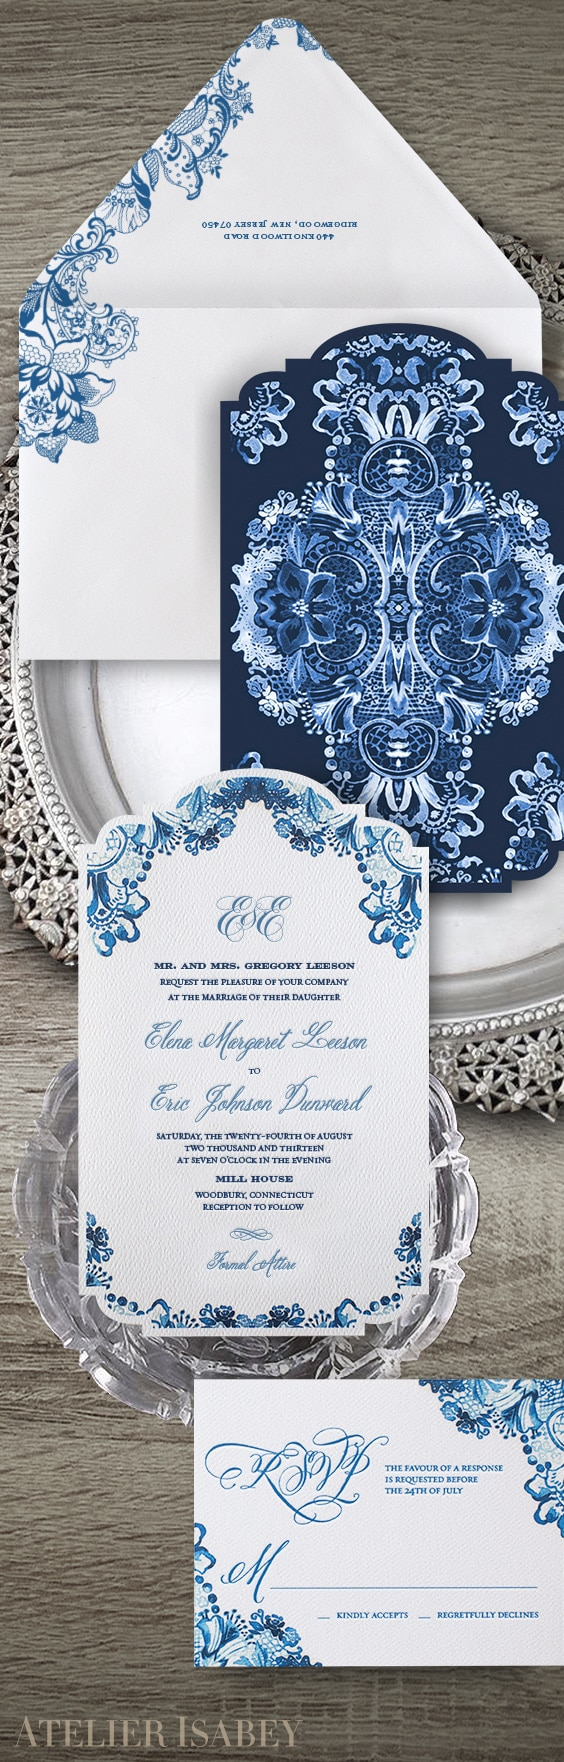 Blue and white watercolor lace wedding invitation | By Atelier Isabey